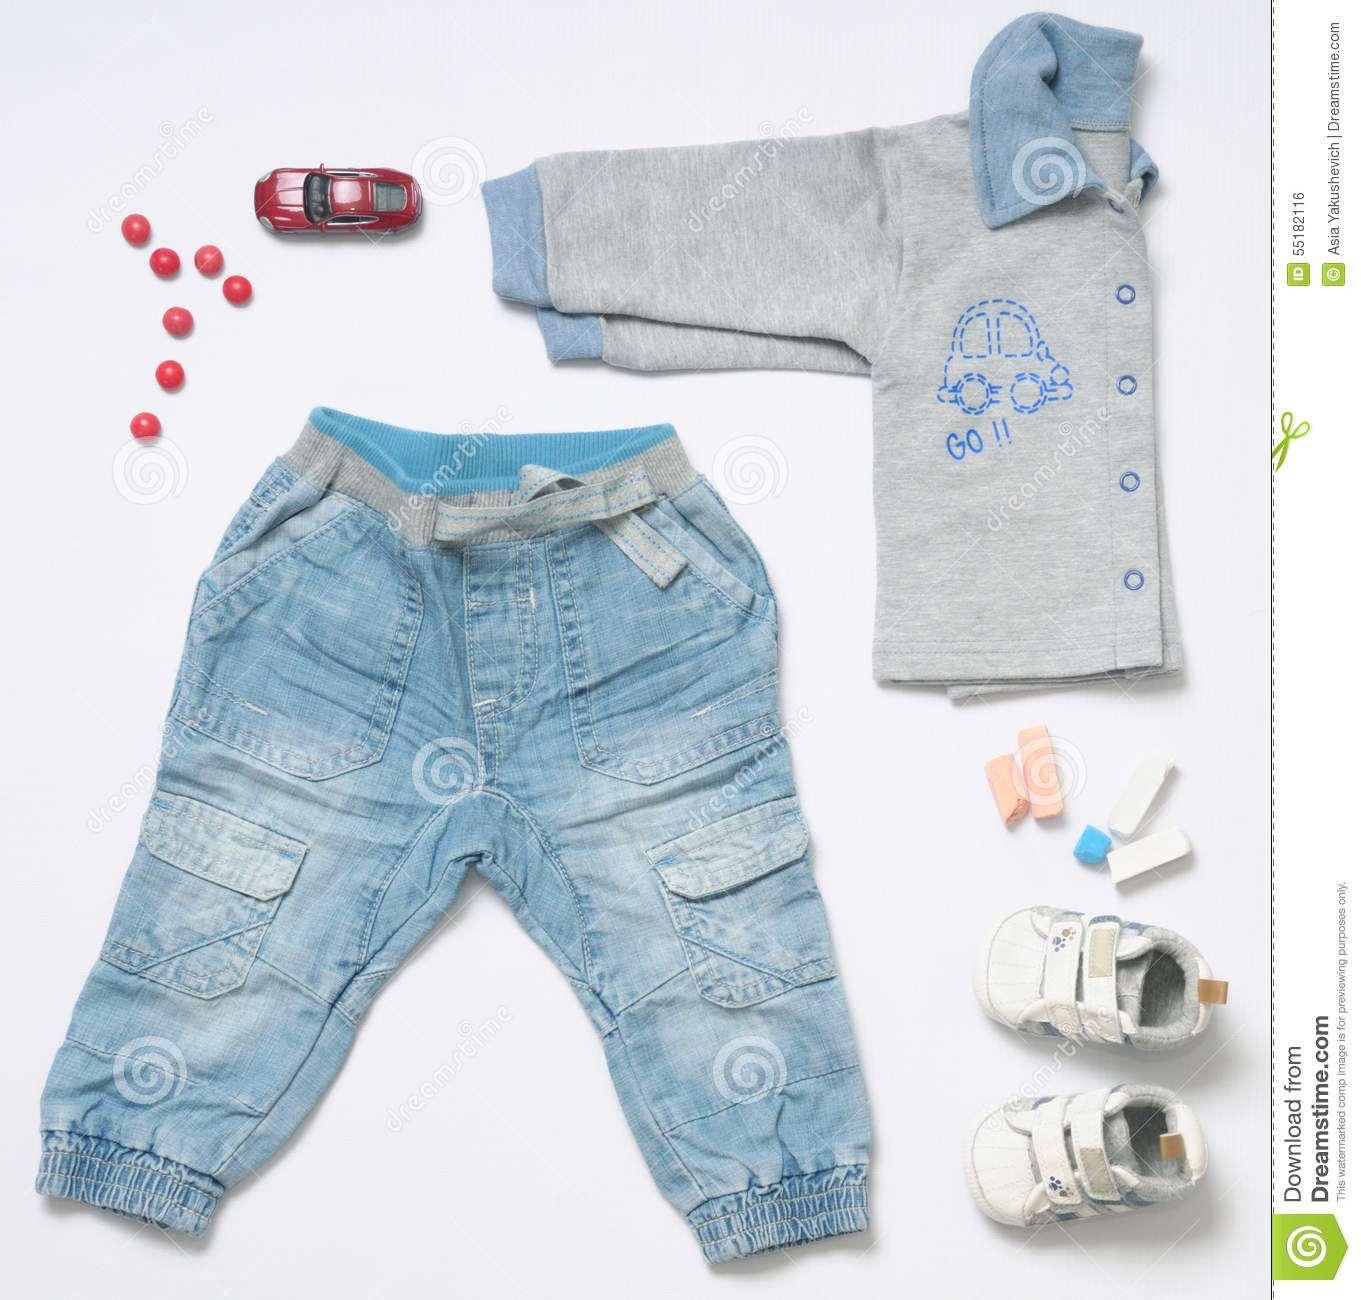 Top View Fashion Trendy Look Baby Boy Clothes With Toy